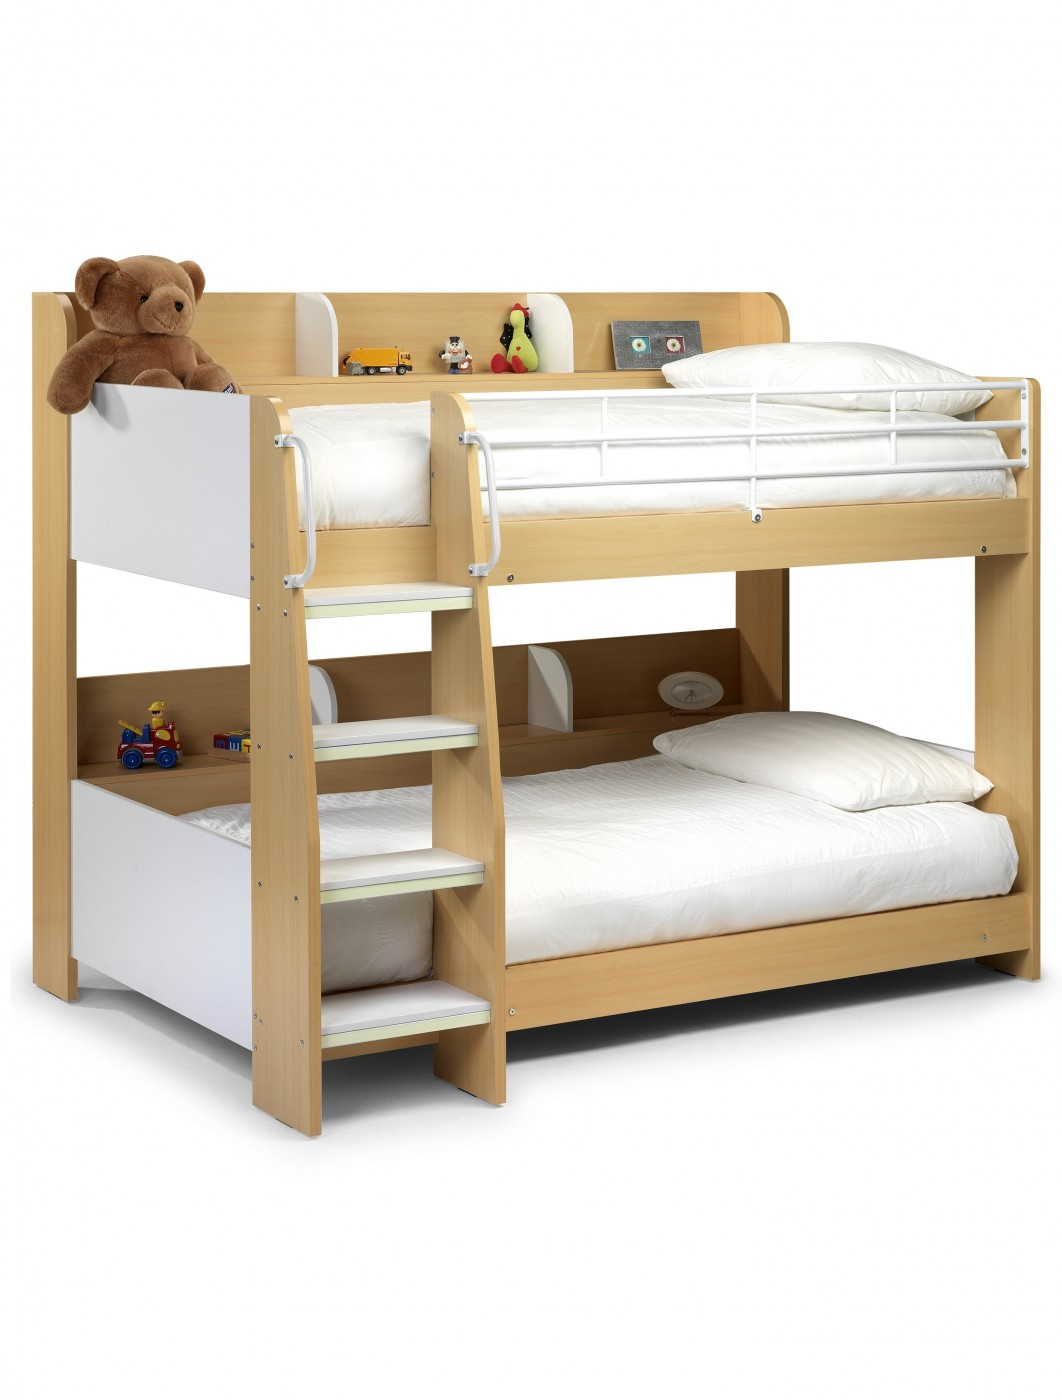 Image Result For Bunk Bed Mattressa